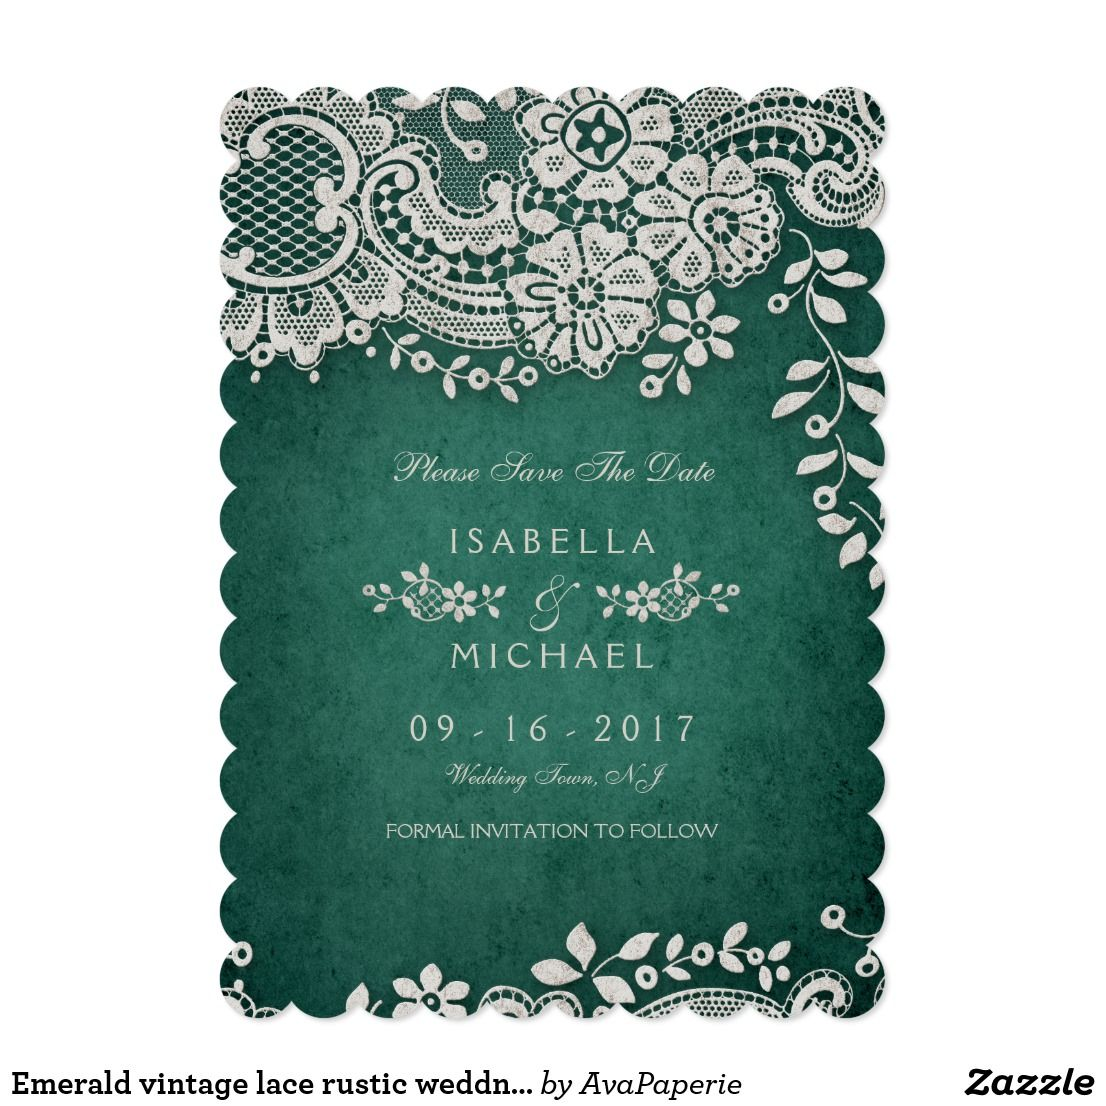 Emerald Vintage Lace Rustic Weddng Save The Date Zazzle